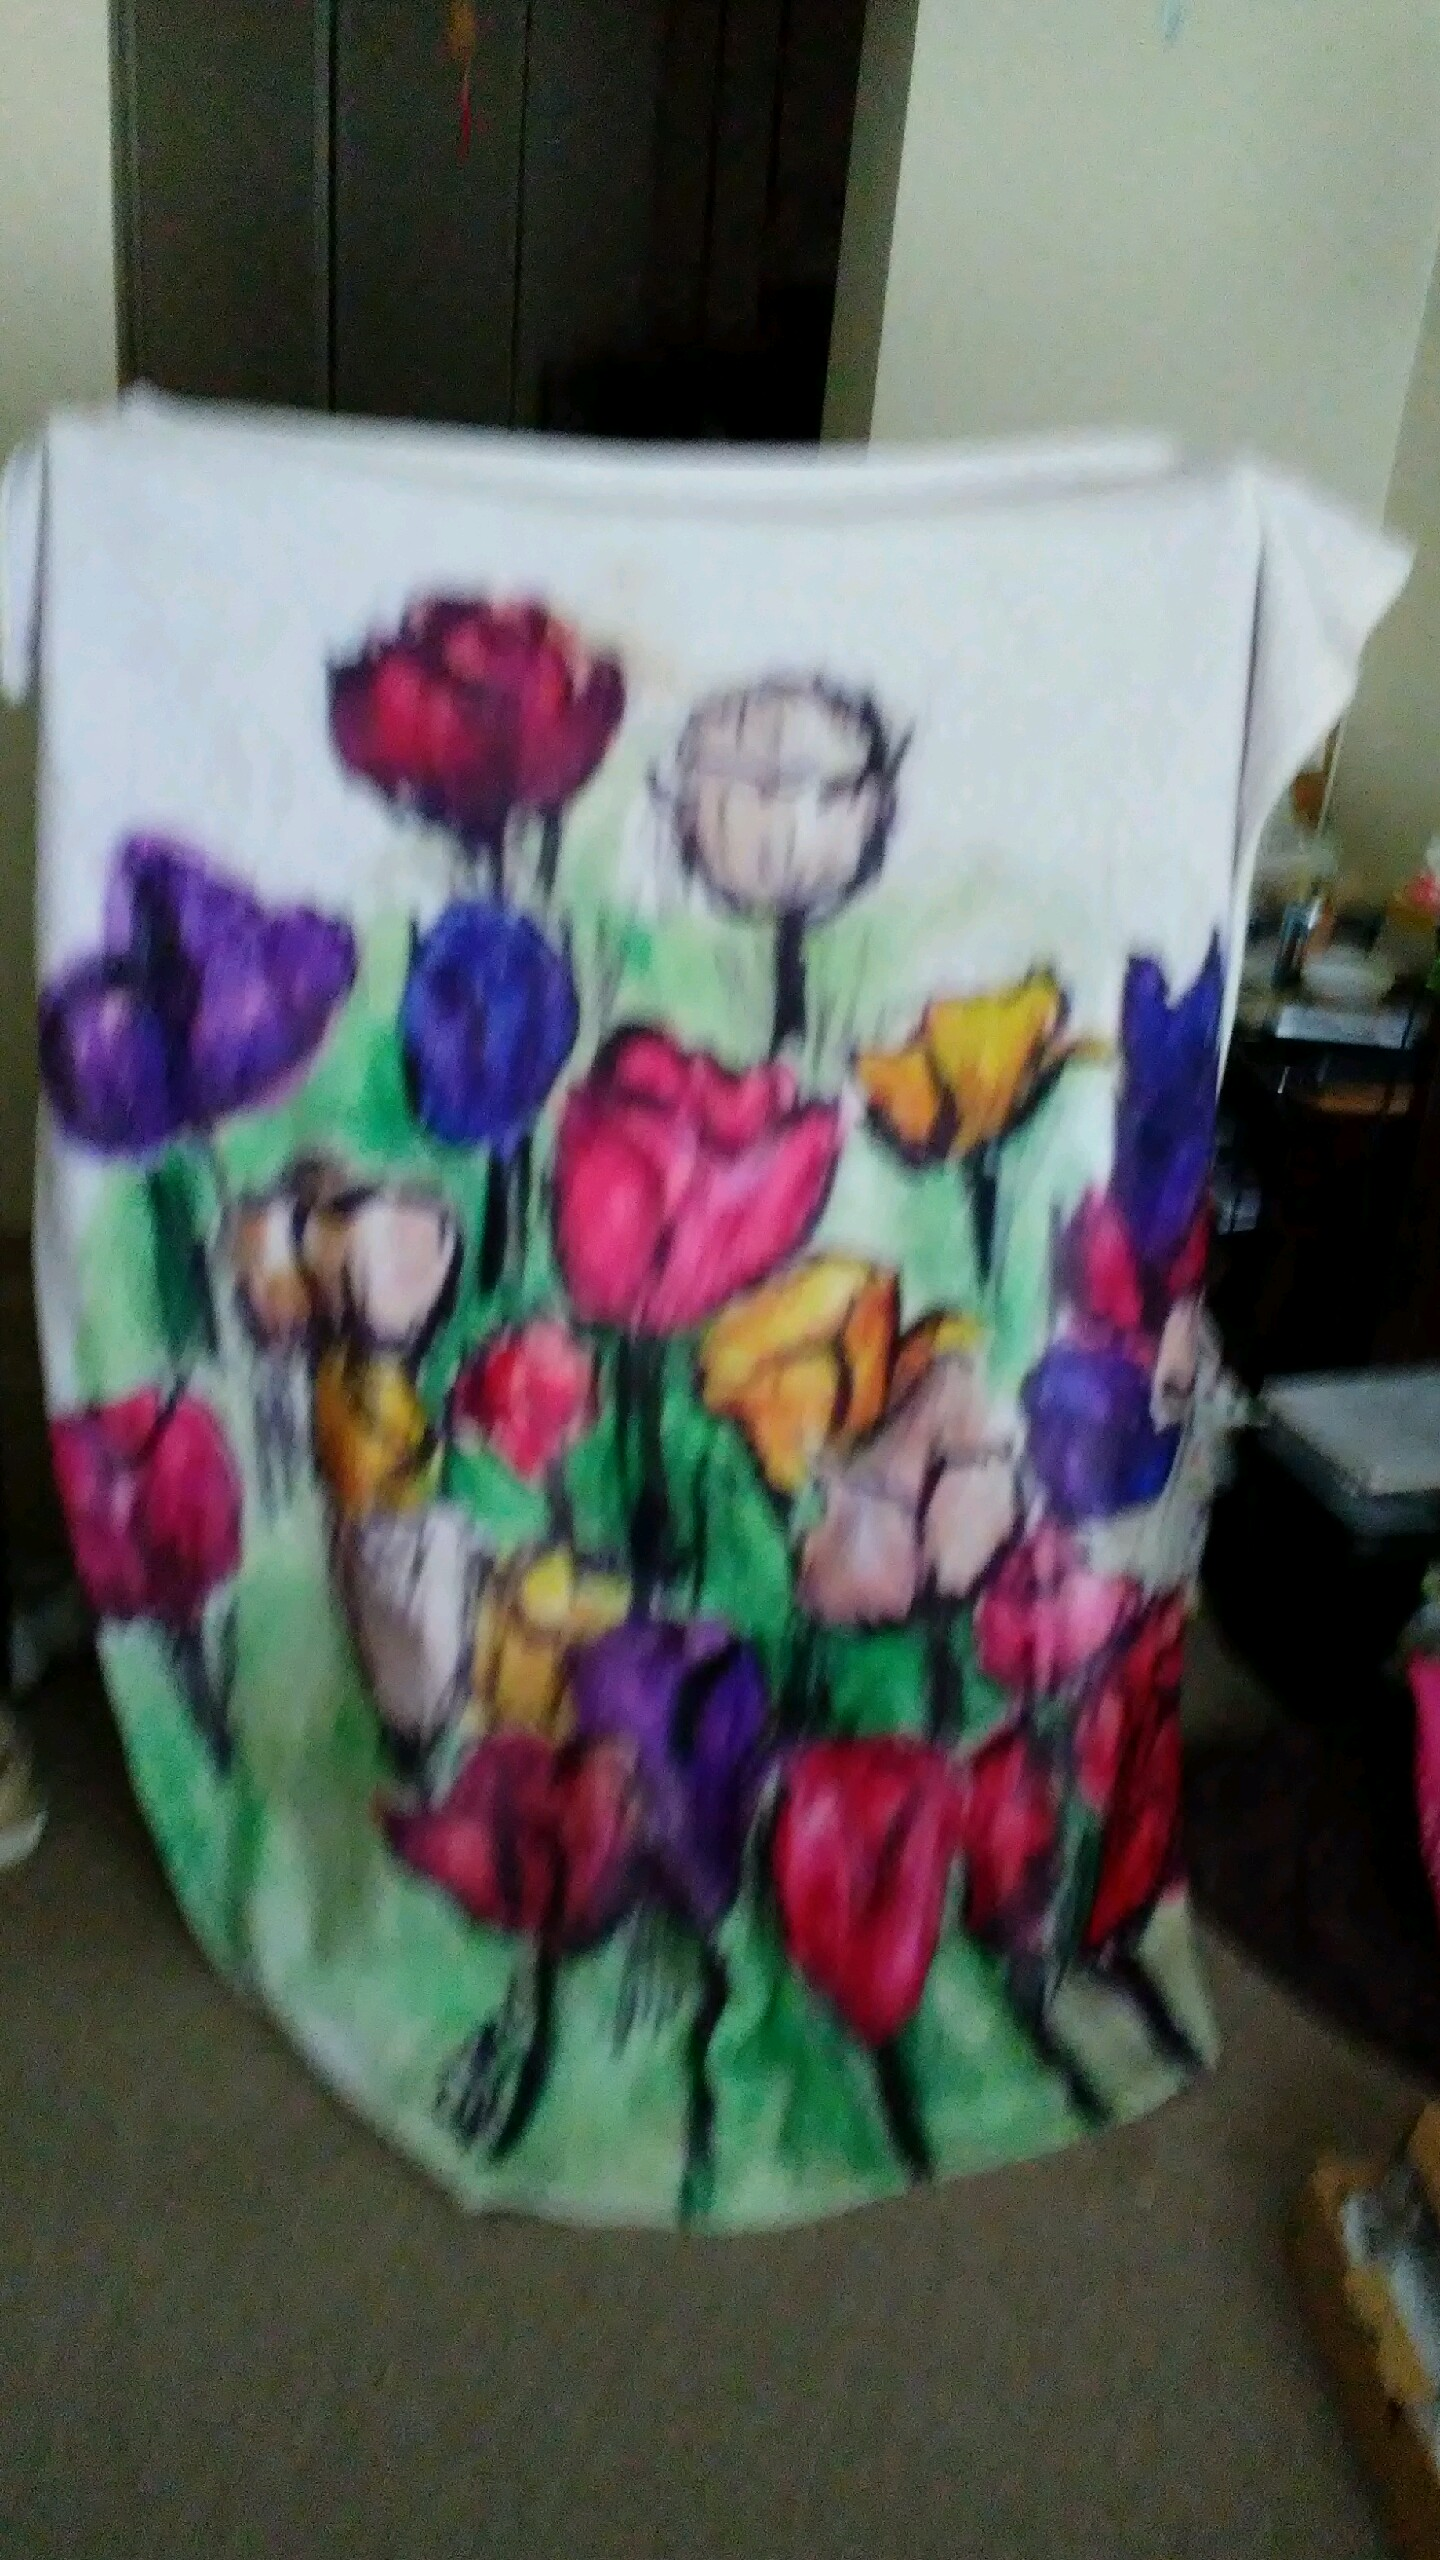 Throw Blanket with Tulip bed flowers